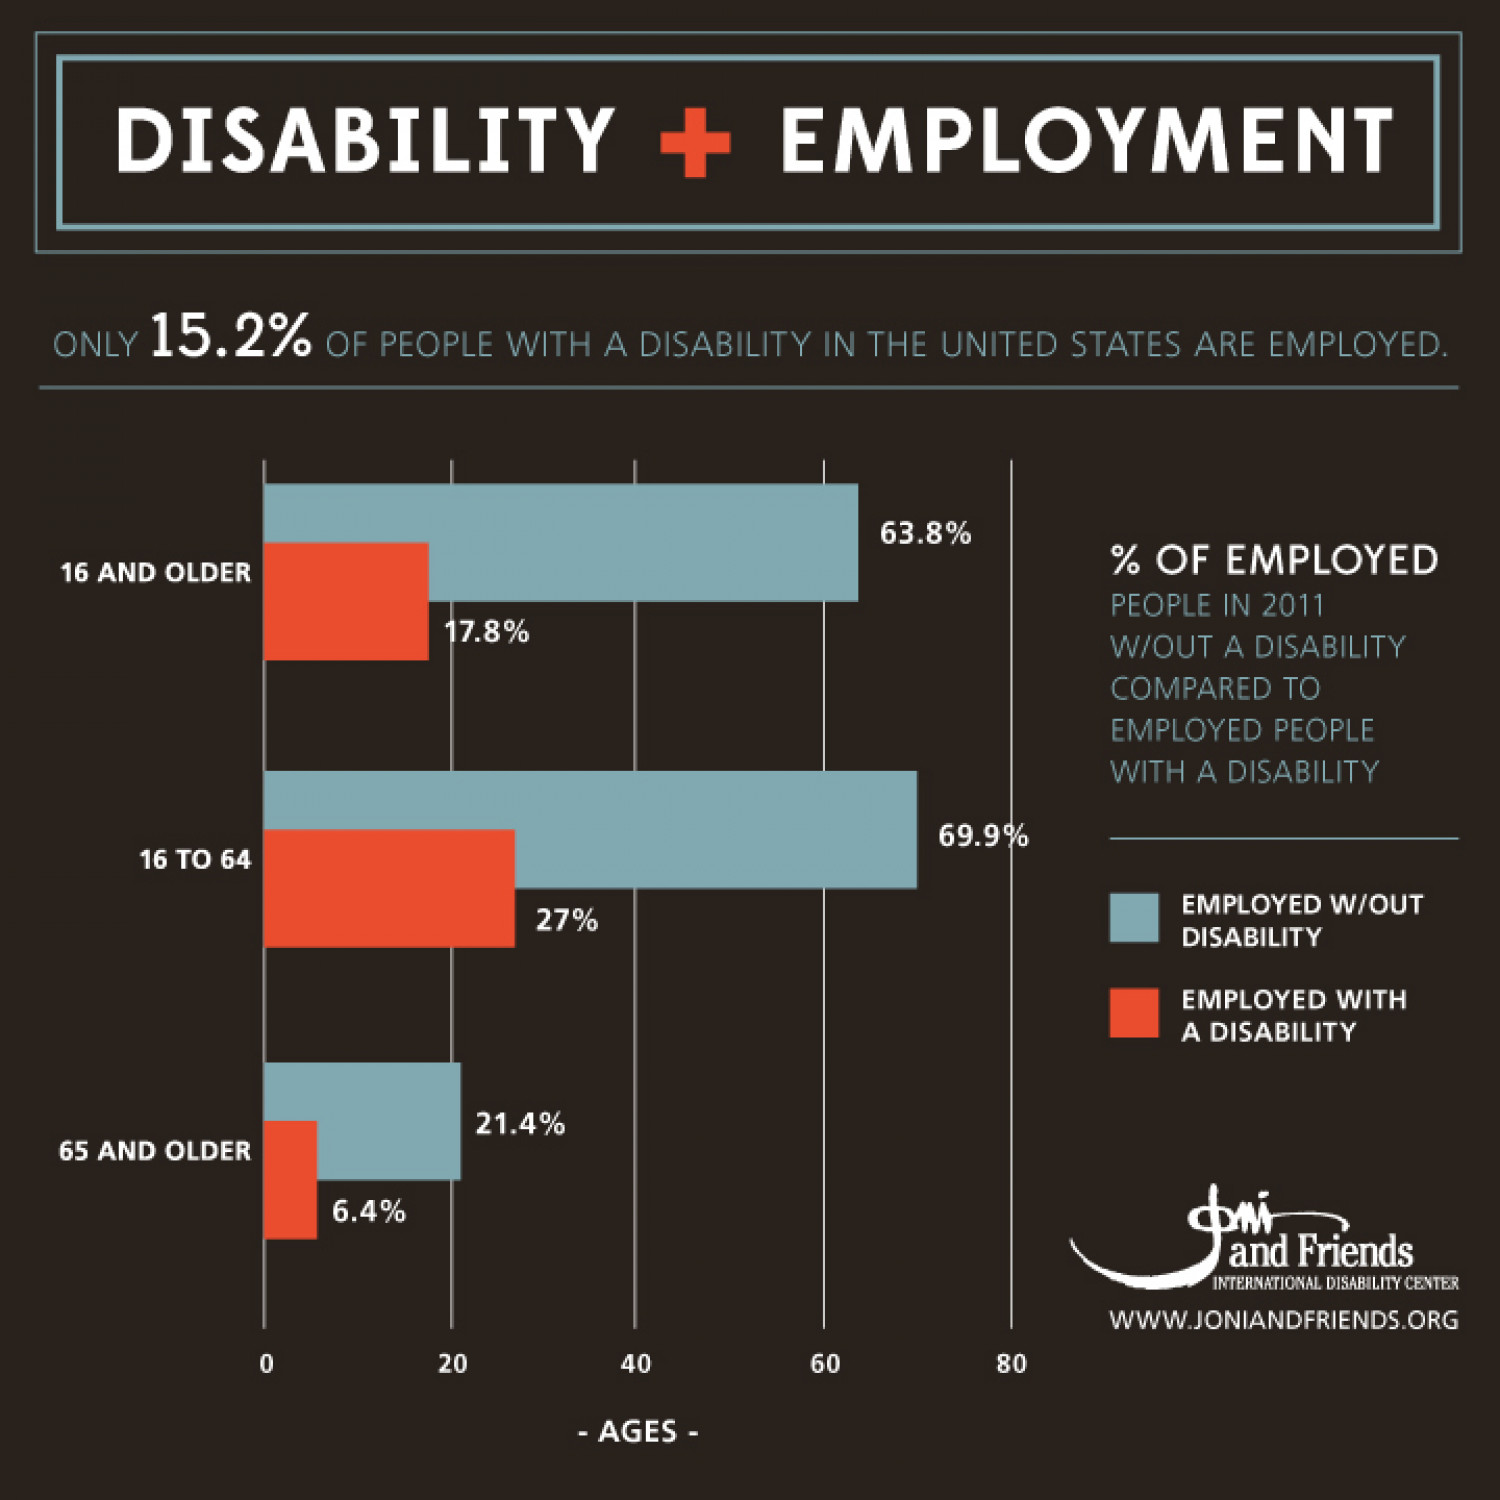 Disability and Employment Infographic